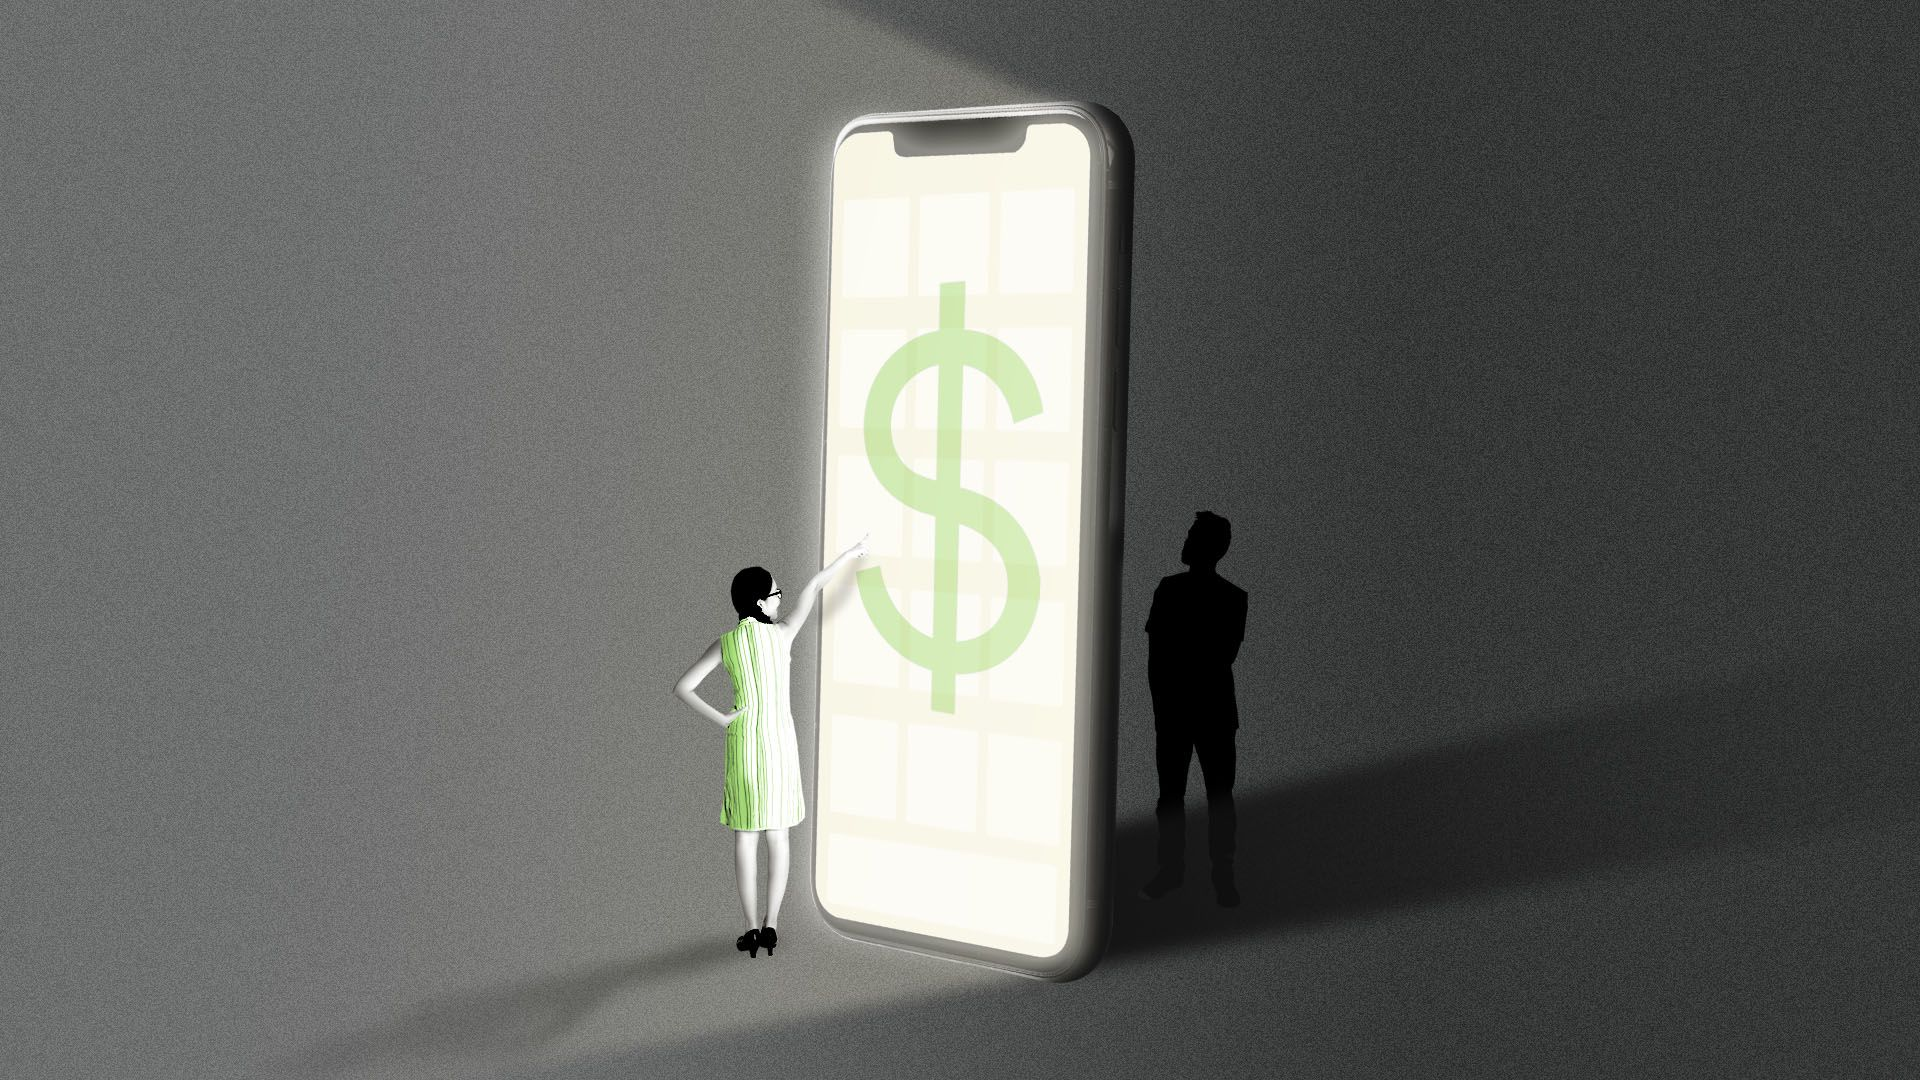 Illustration of a small person at a giant iphone screen with a dollar bill on it, and a person behind the iphone in the dark